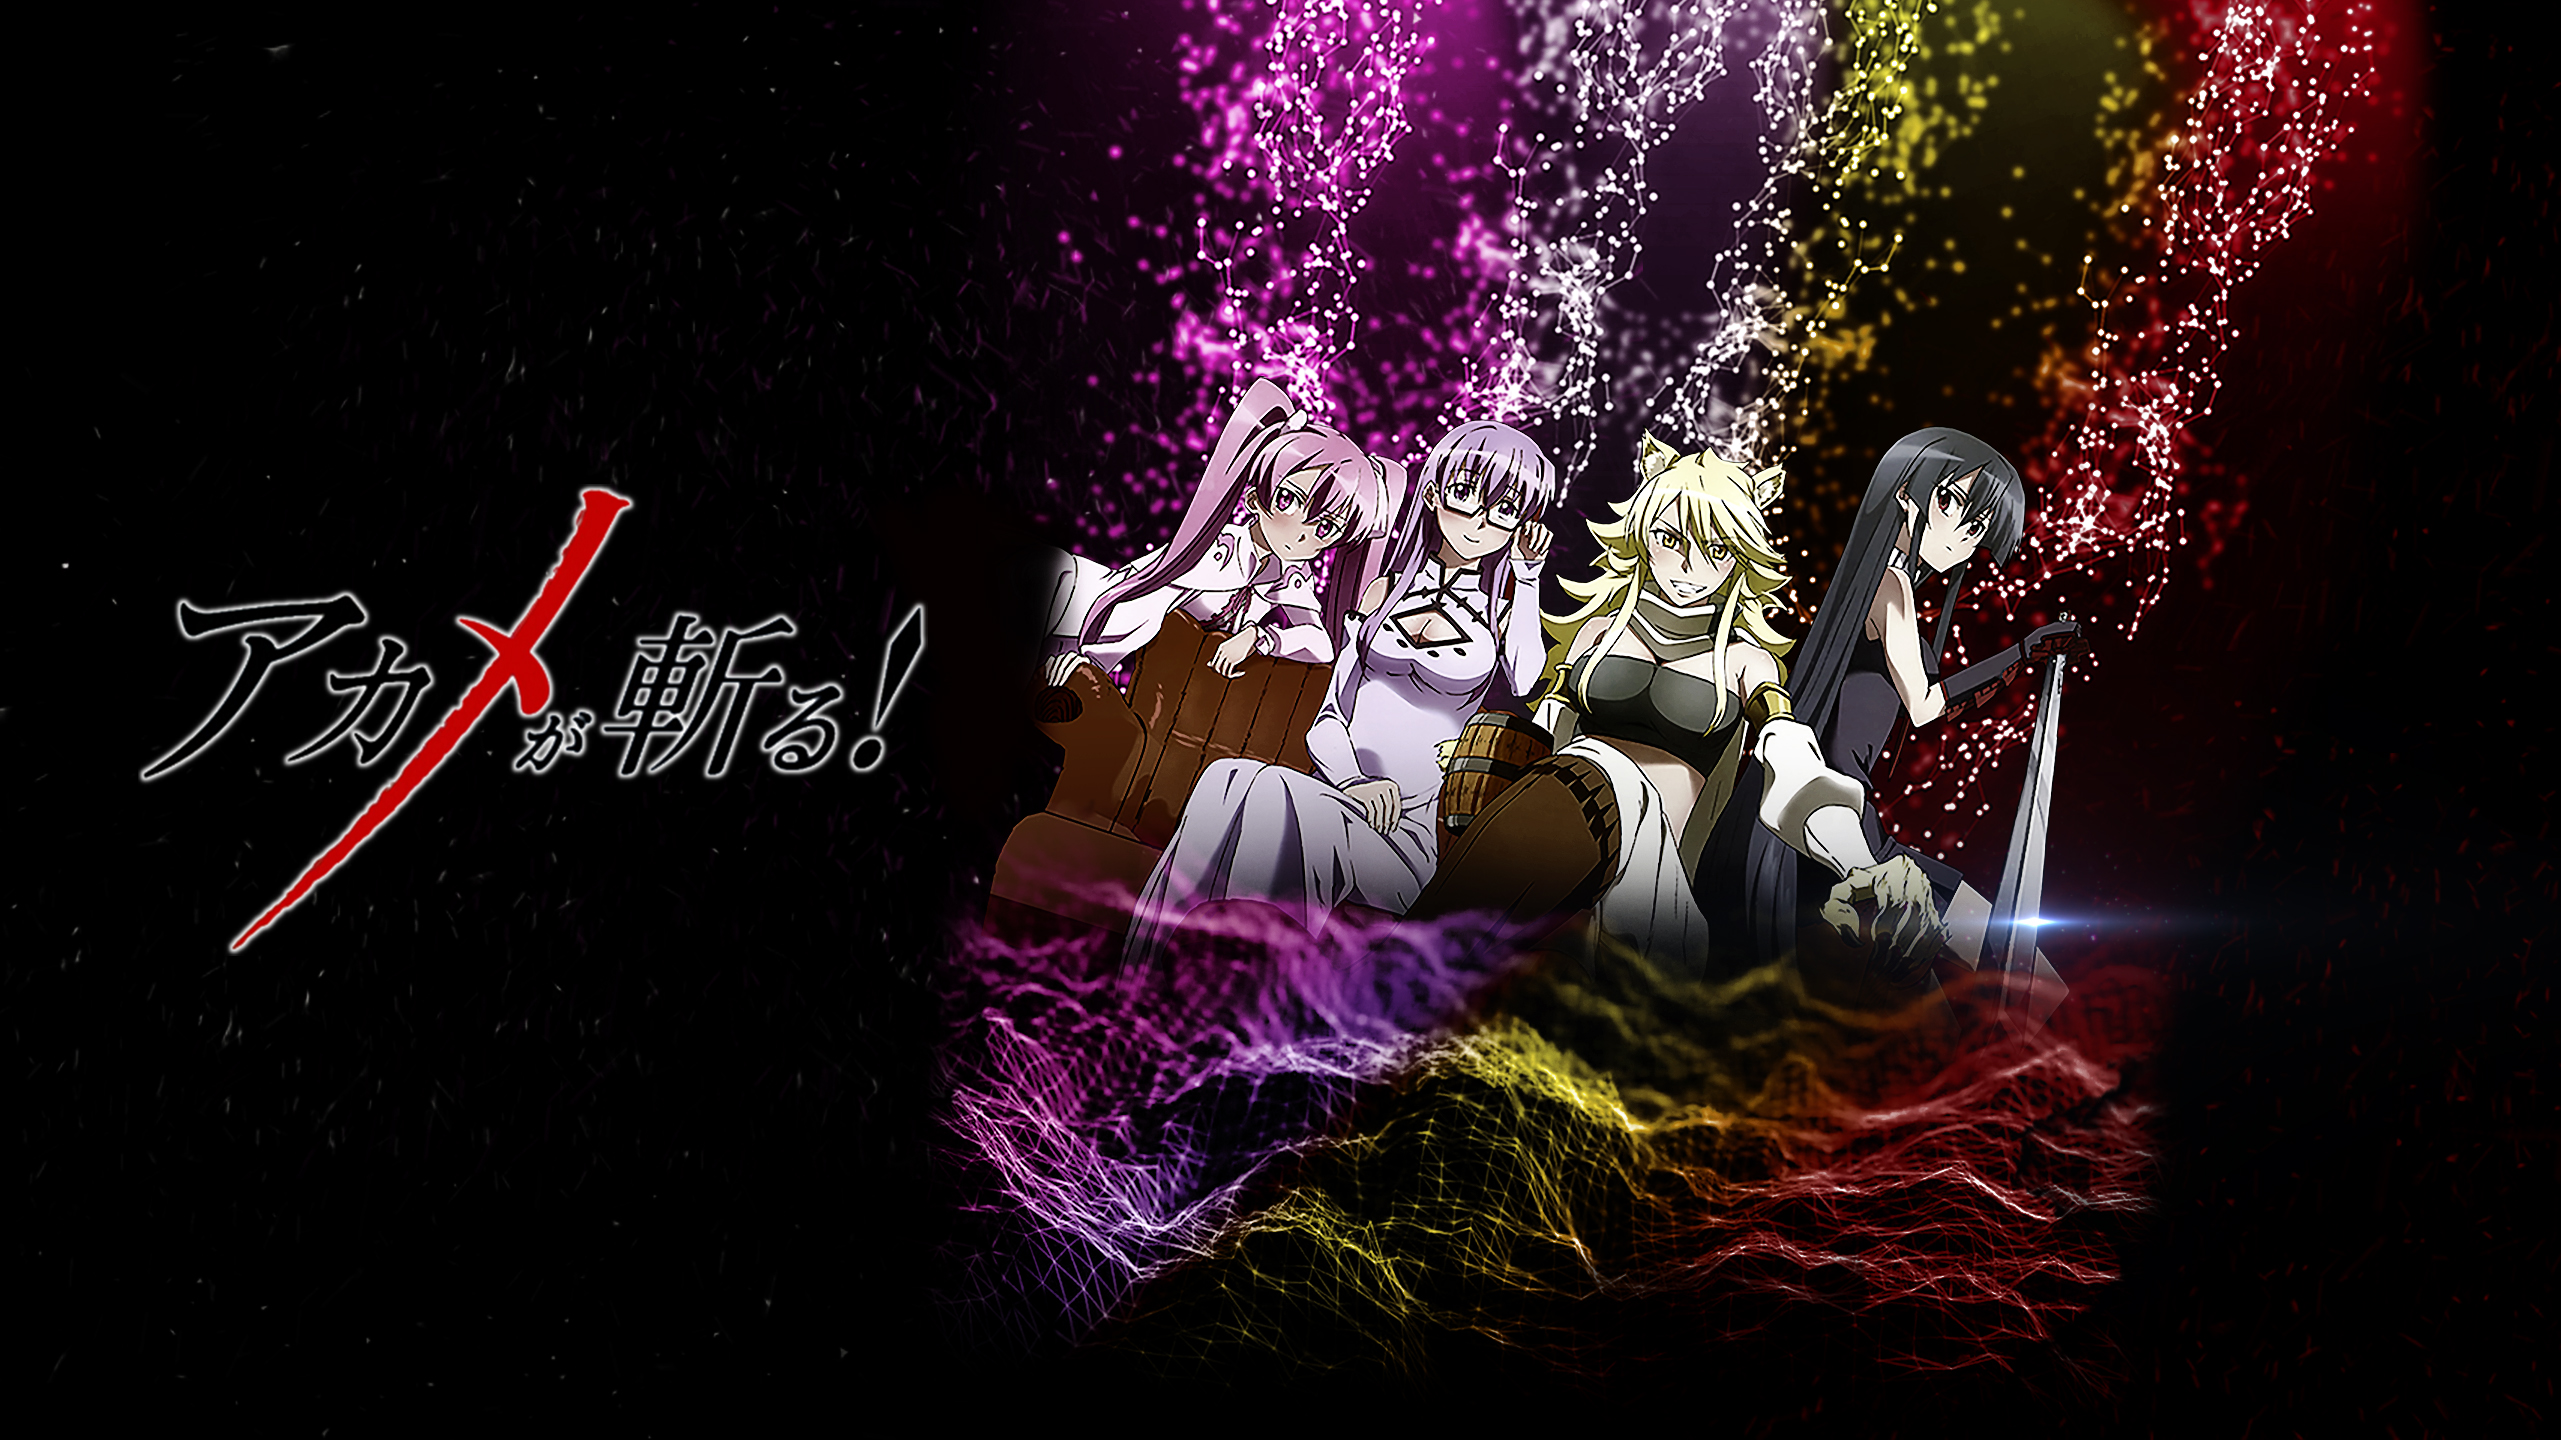 Akame Ga Kill! Wallpapers, Pictures, Images